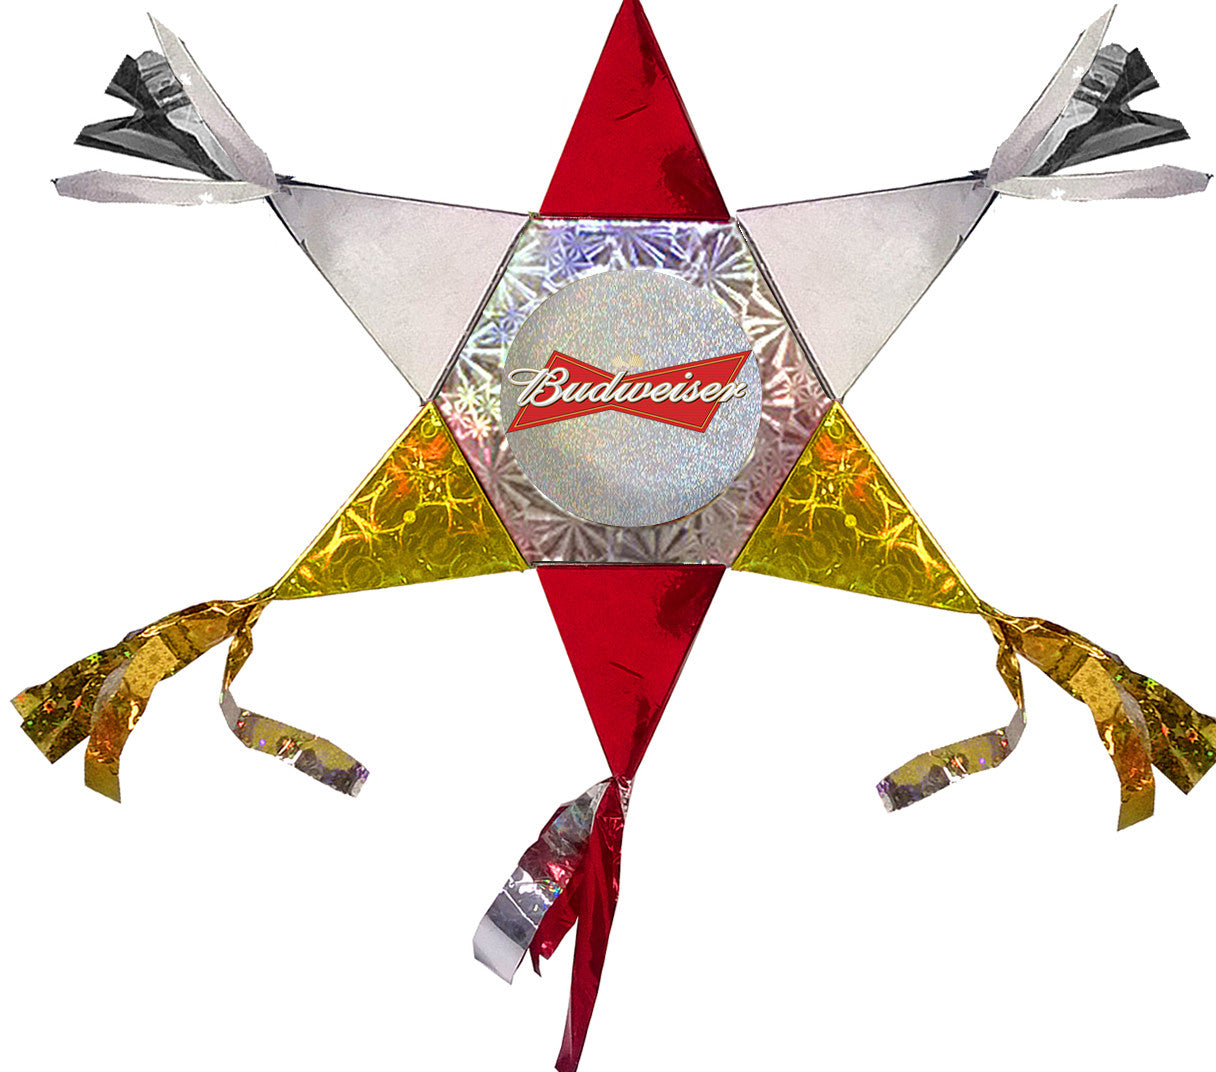 Budweiser Mini Star Promotional Pinata